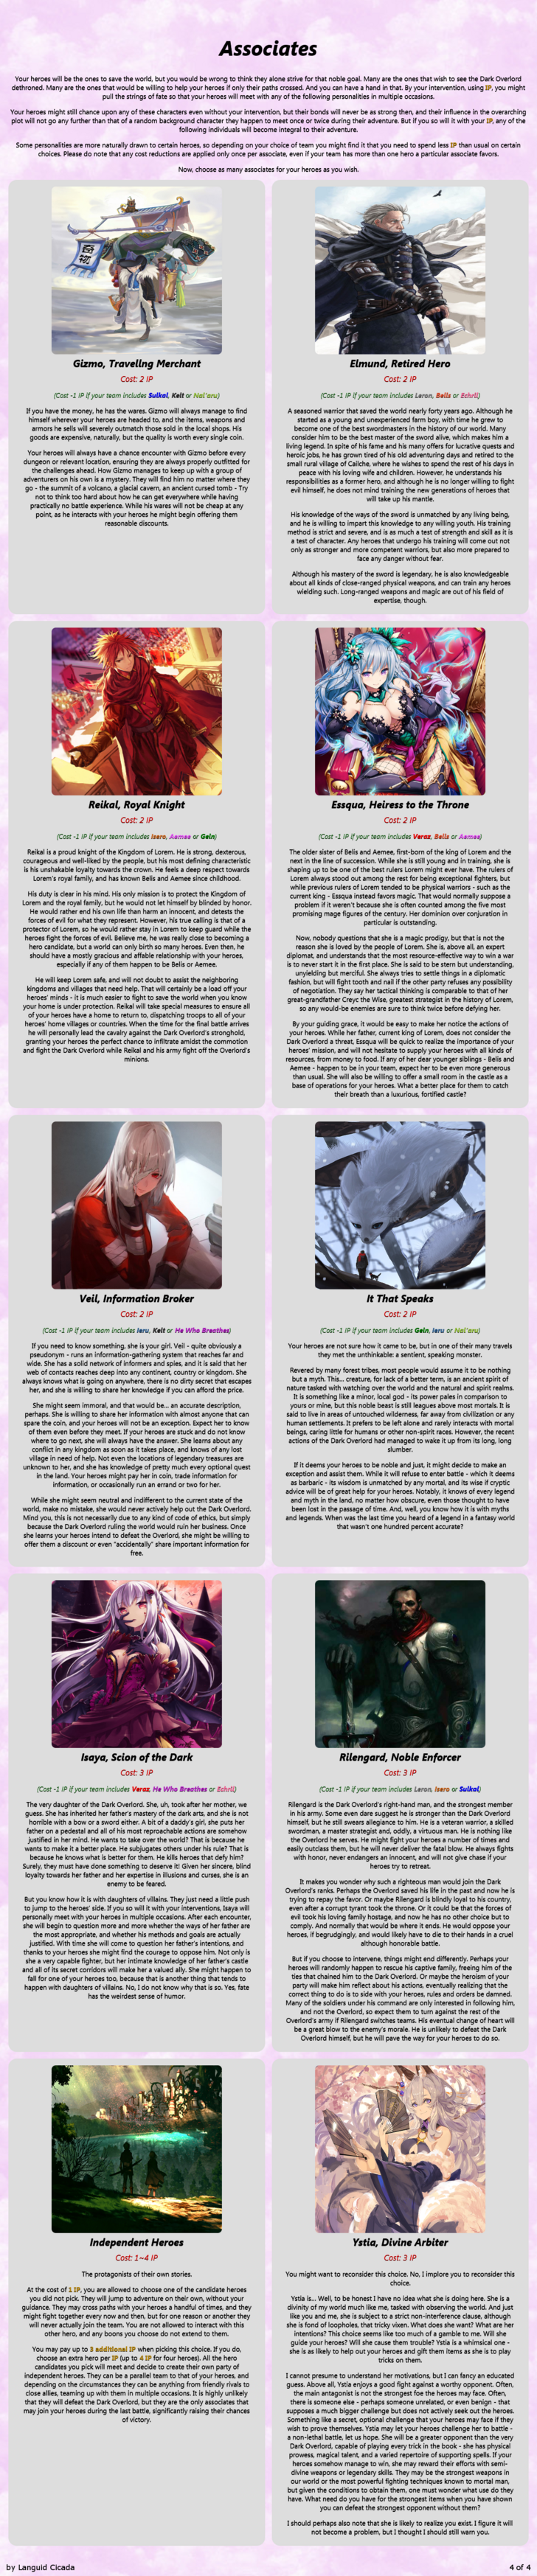 The Chooser of the One CYOA from tg in 2019 | CYOA (2